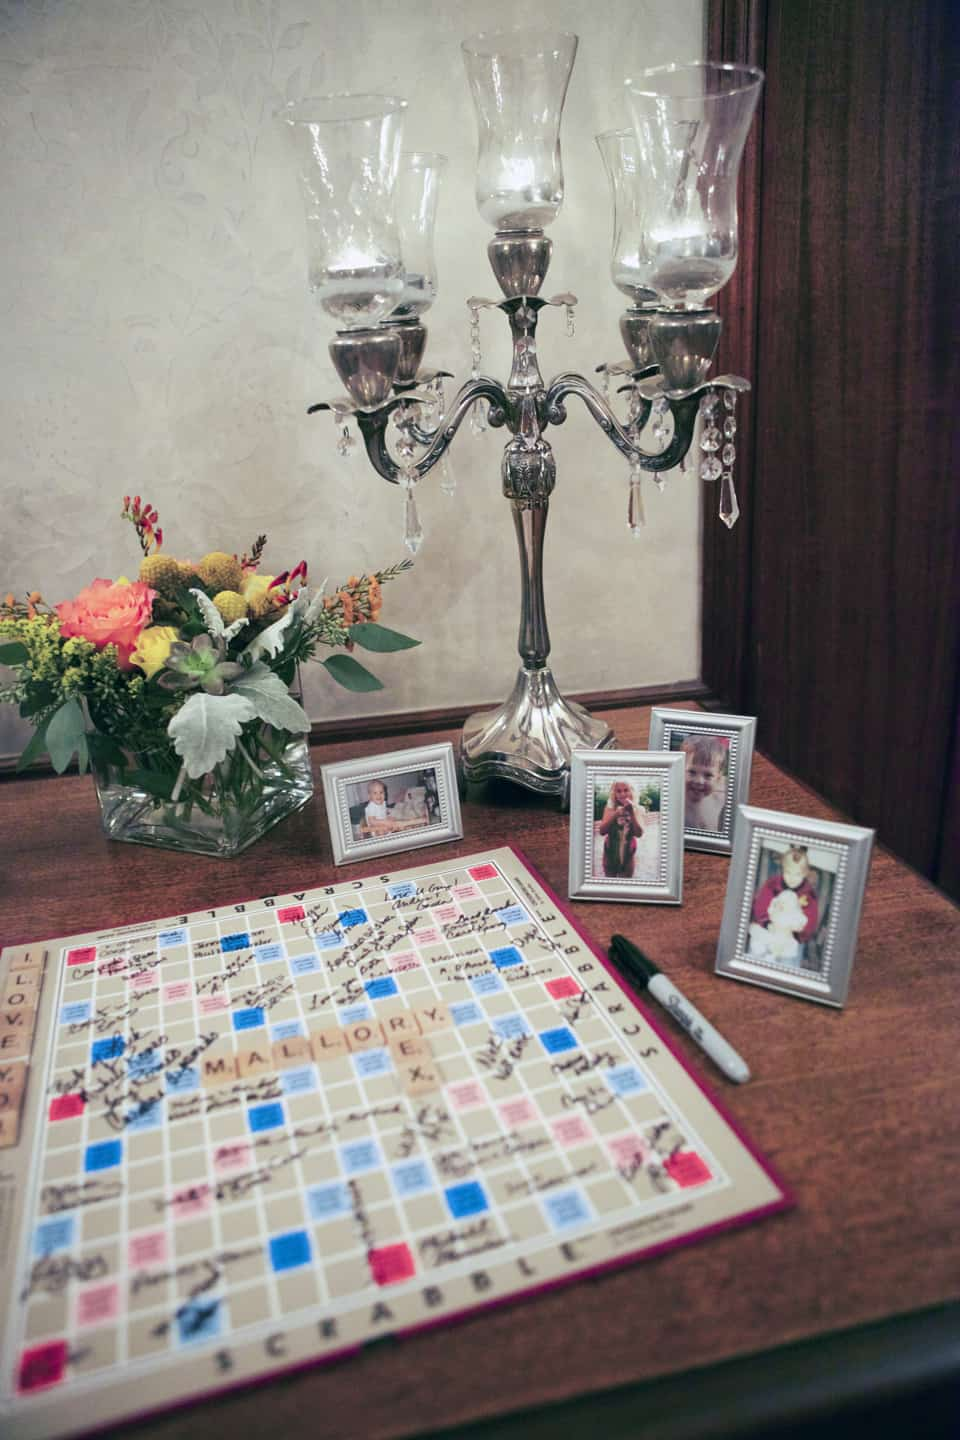 """Not only did the bride and groom provide board games for their guests who weren't that into dancing, they also incorporated their favorite game of scrabble into their guest book! You'll also notice framed photos of the bride and groom growing up for their guests to enjoy as they were waiting to sign the """"book""""!"""